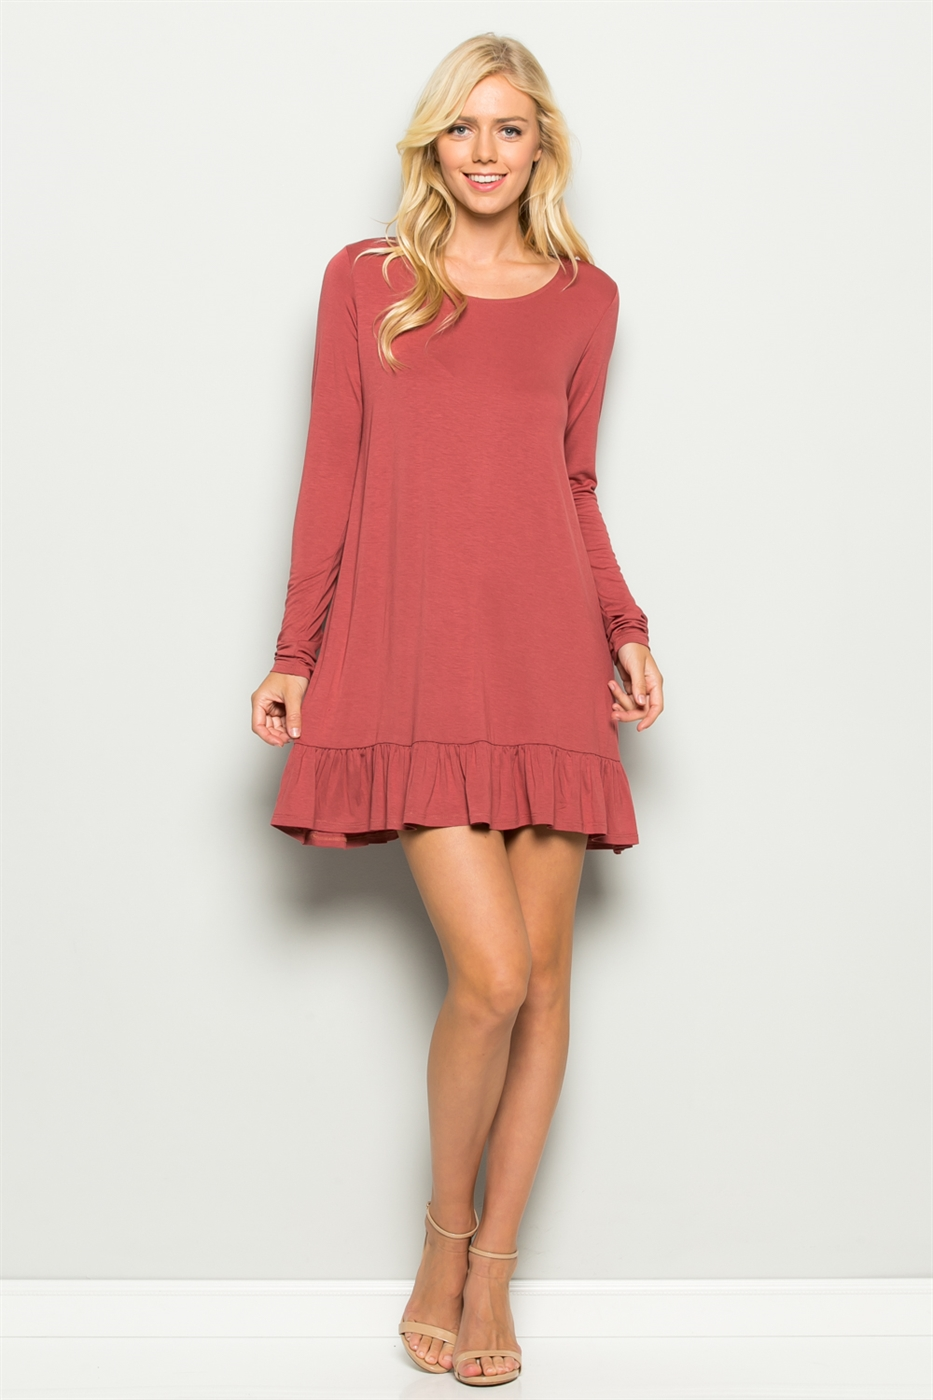 RUFFLE HEM SHIFT DRESS - orangeshine.com